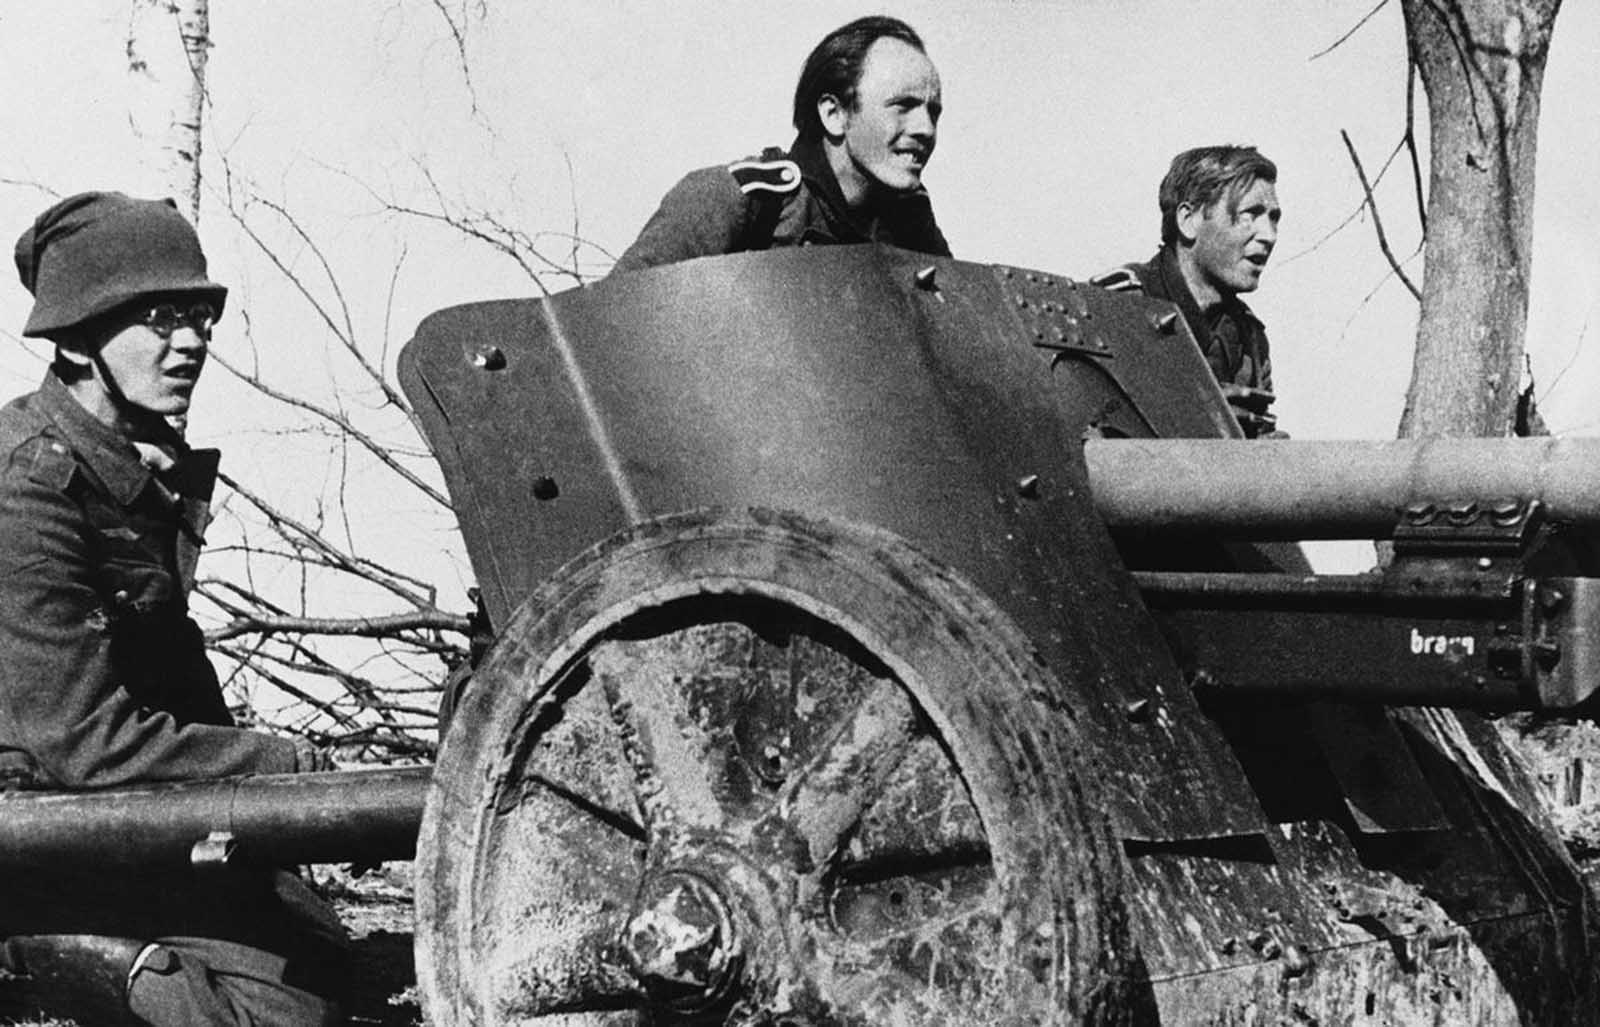 The crew of a German anti-tank gun, ready for action at the Russian front in late 1942.